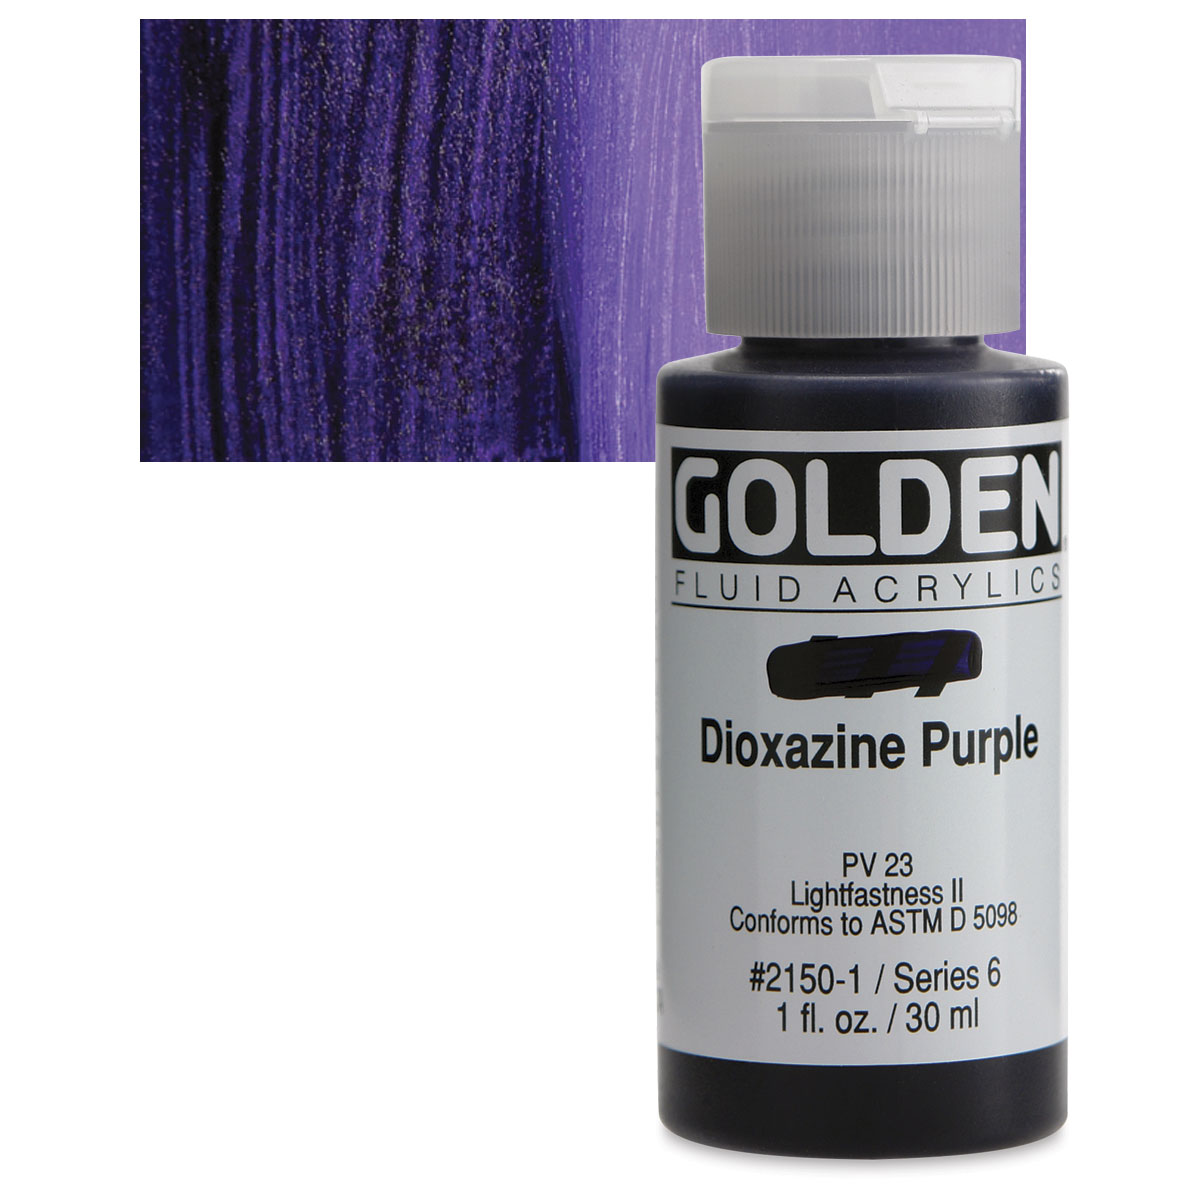 006386021 golden fluid acrylics blick art materials